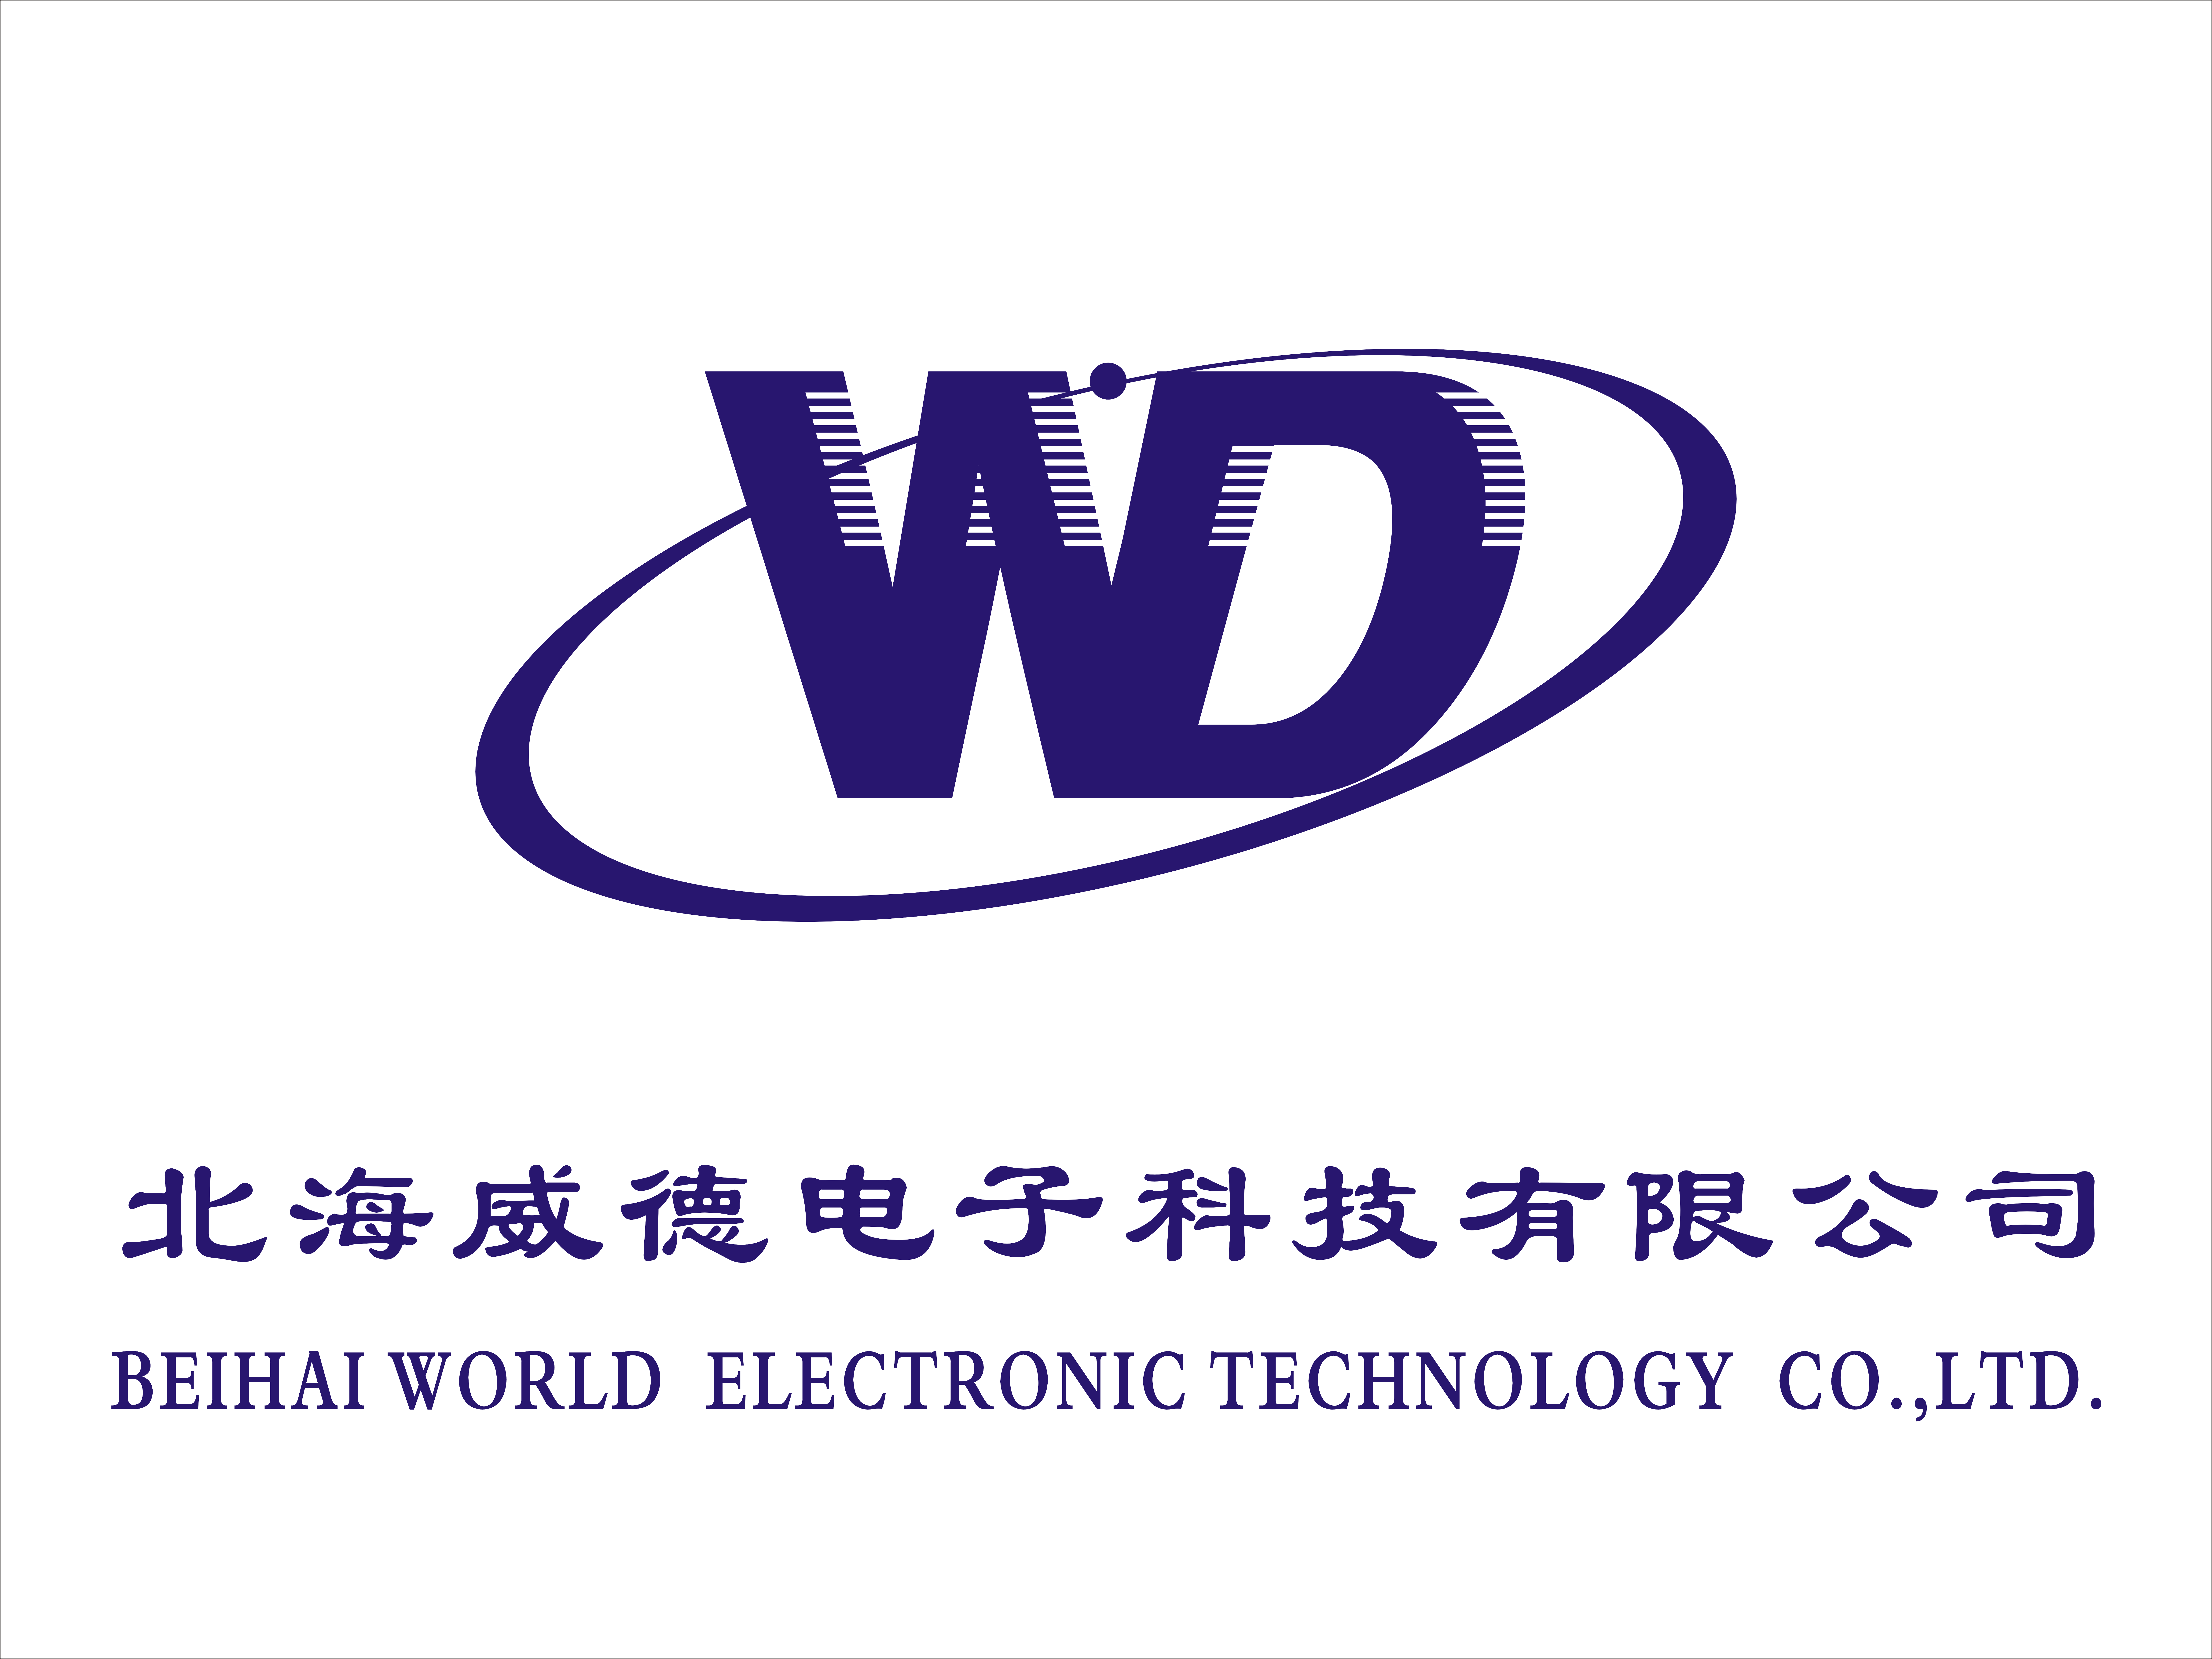 BEIHAI WORLD ELECTRONIC TECHNOLOGY CO.,LTD